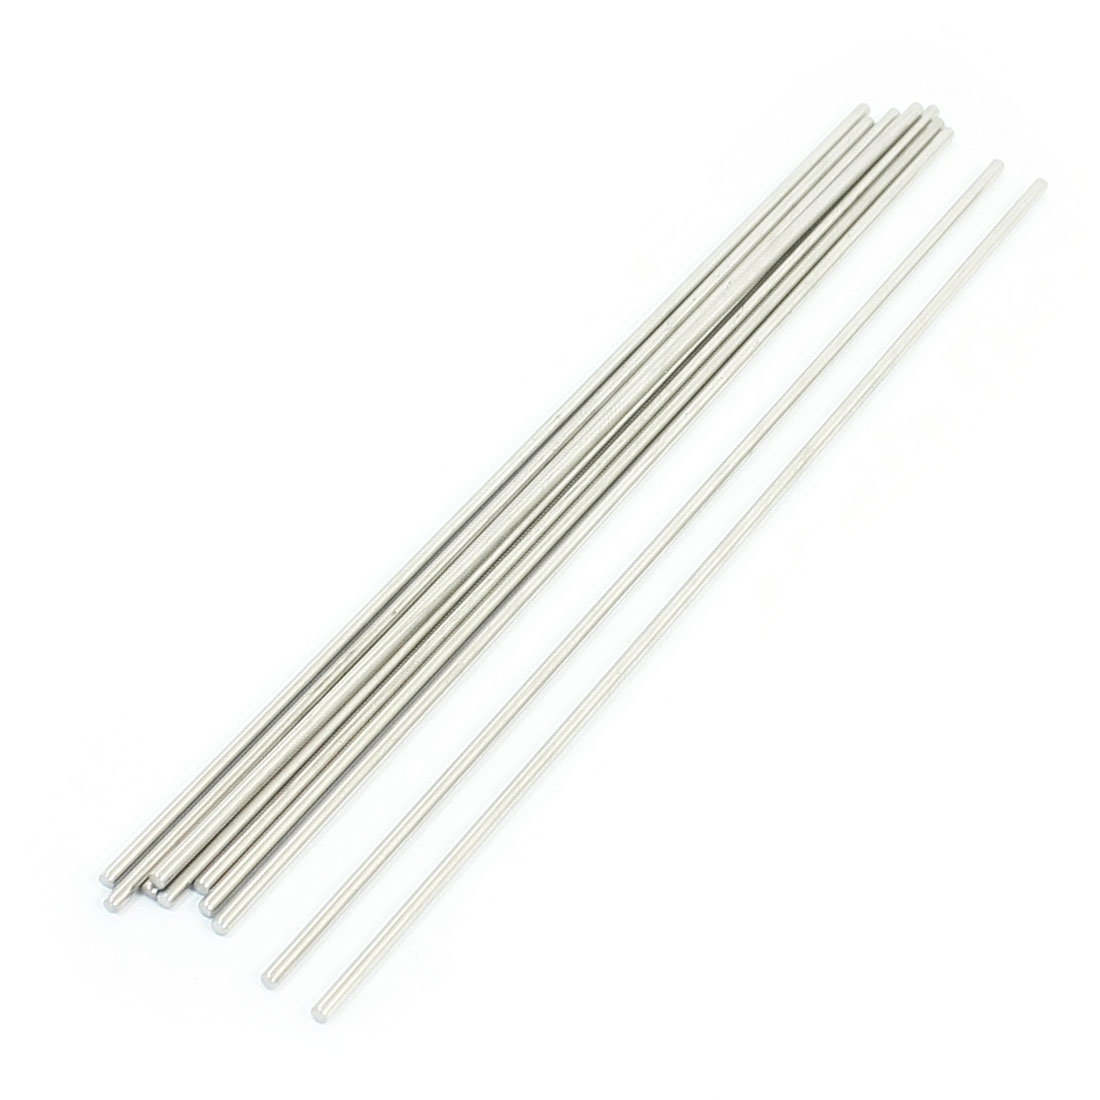 10pcs Silver Tone Stainless Steel 170 x 2.5mm Round Rod Axle for Boat Toys